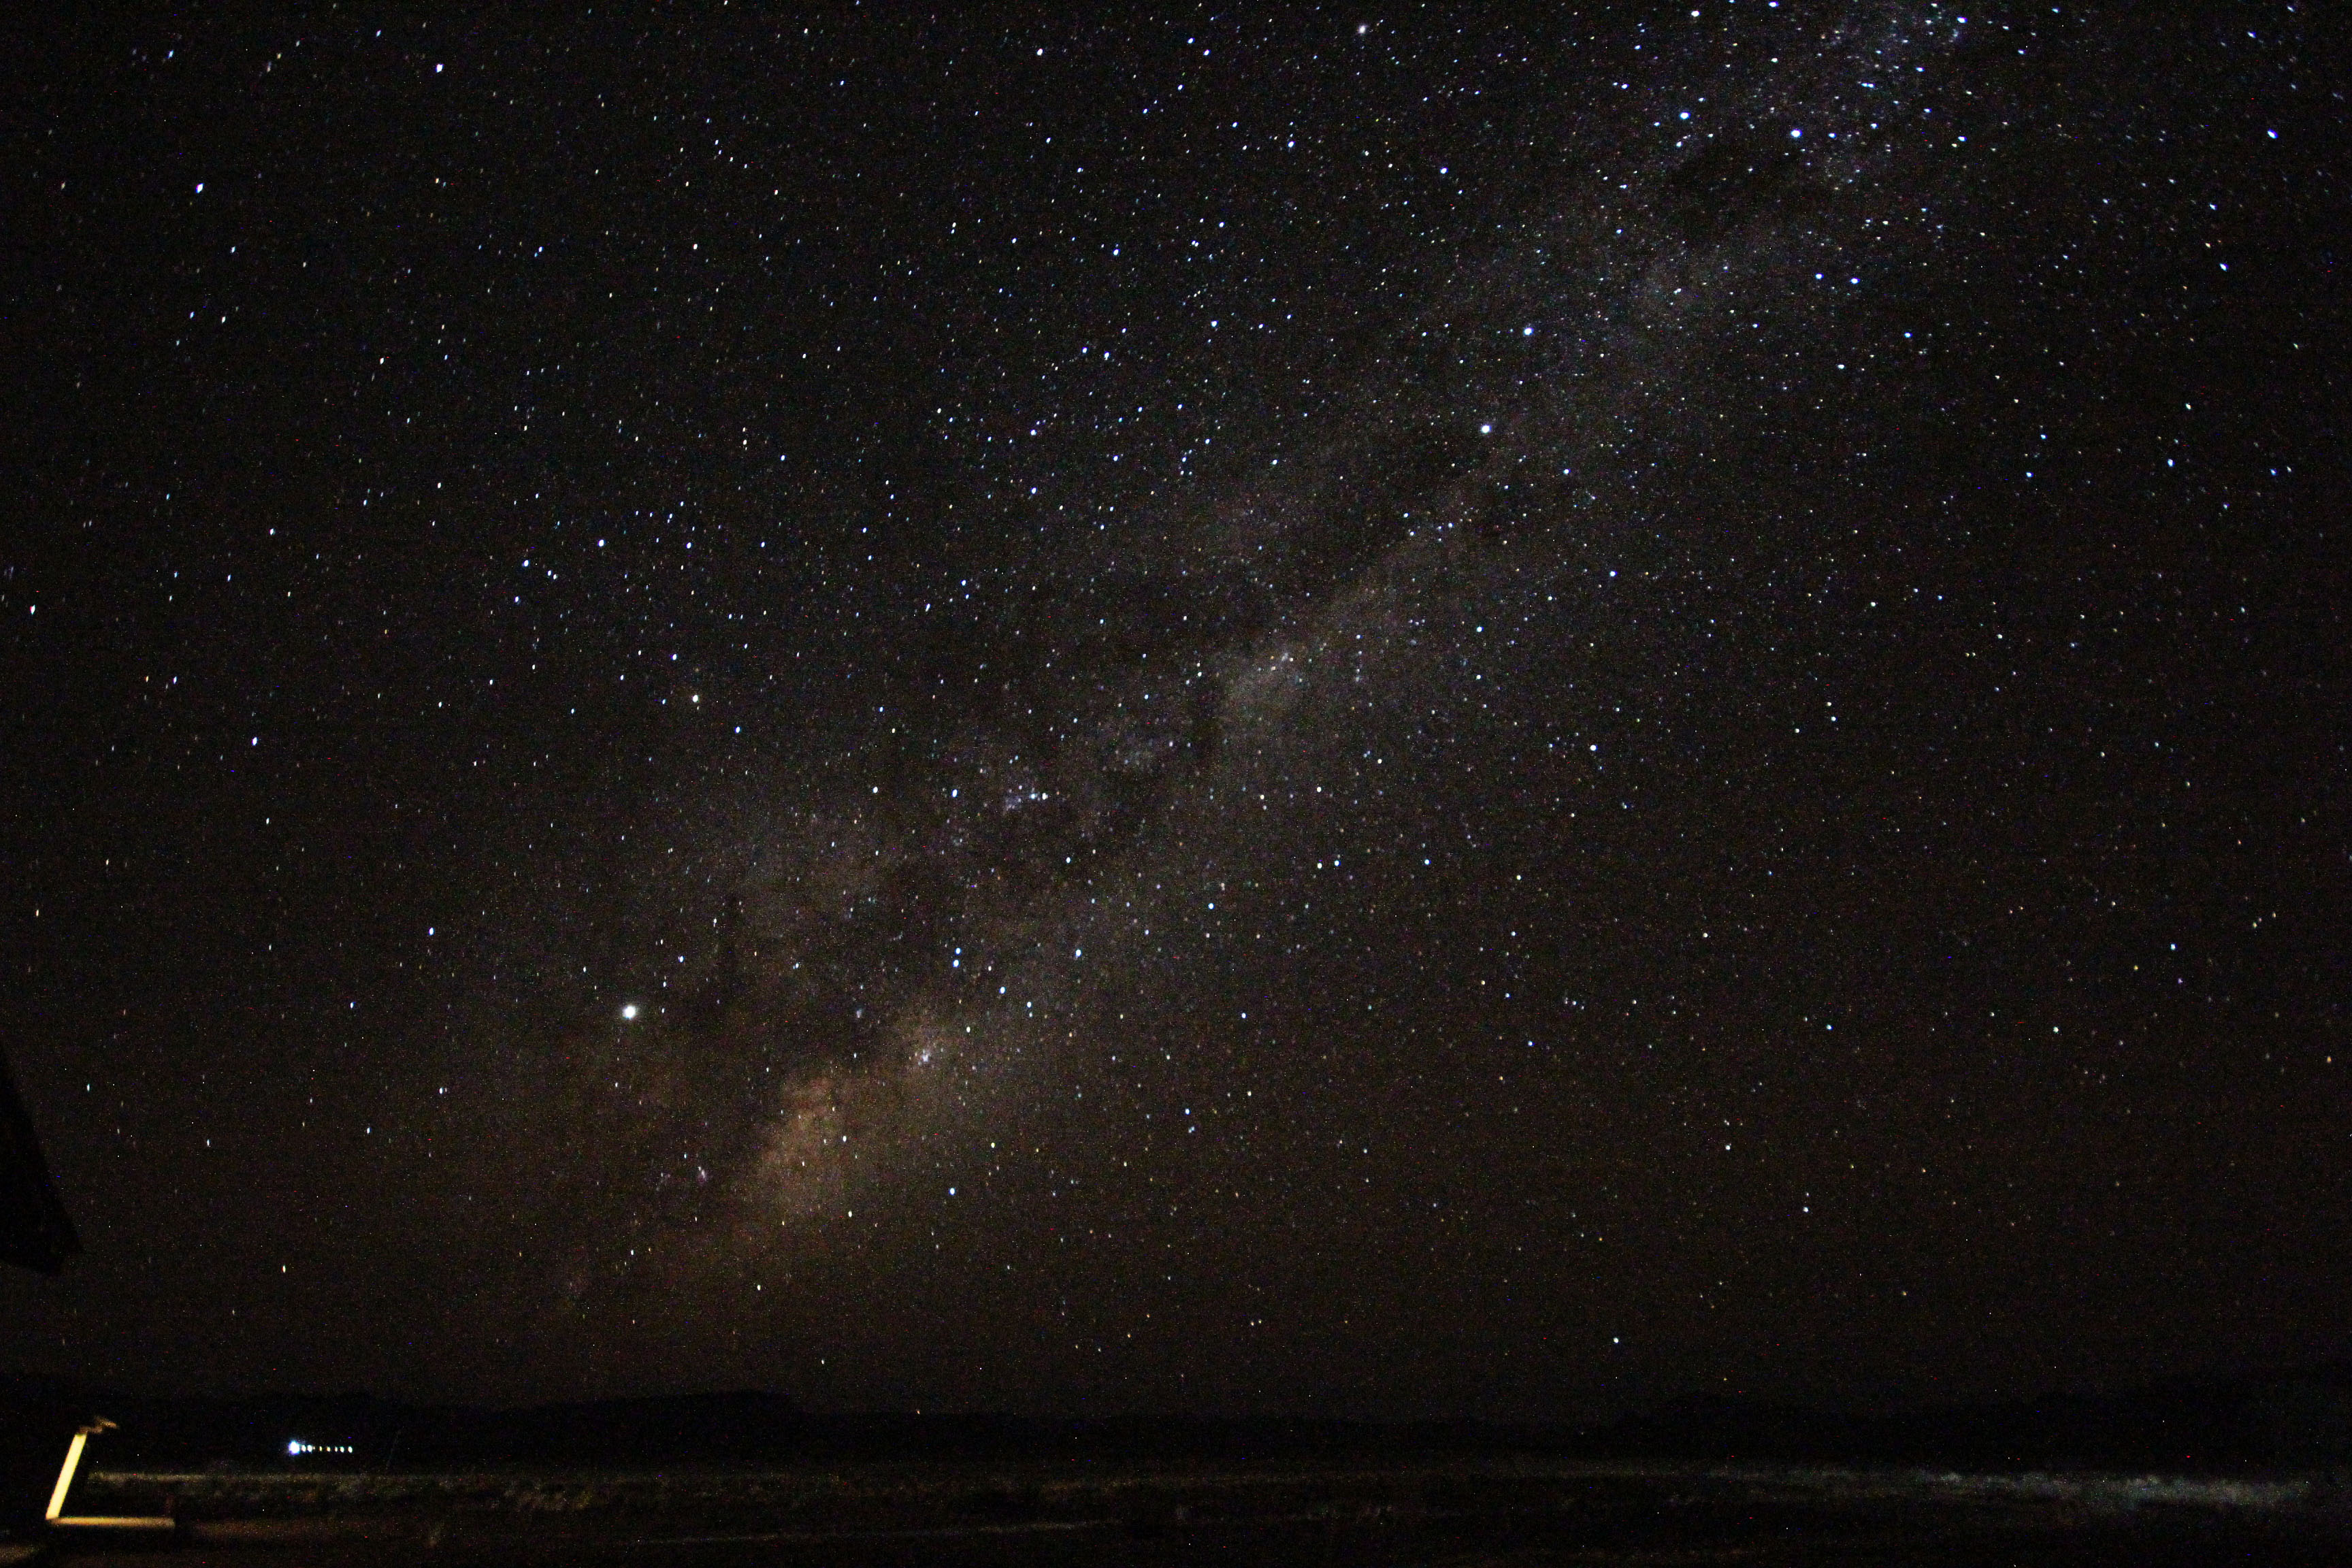 namibia night sky.jpg